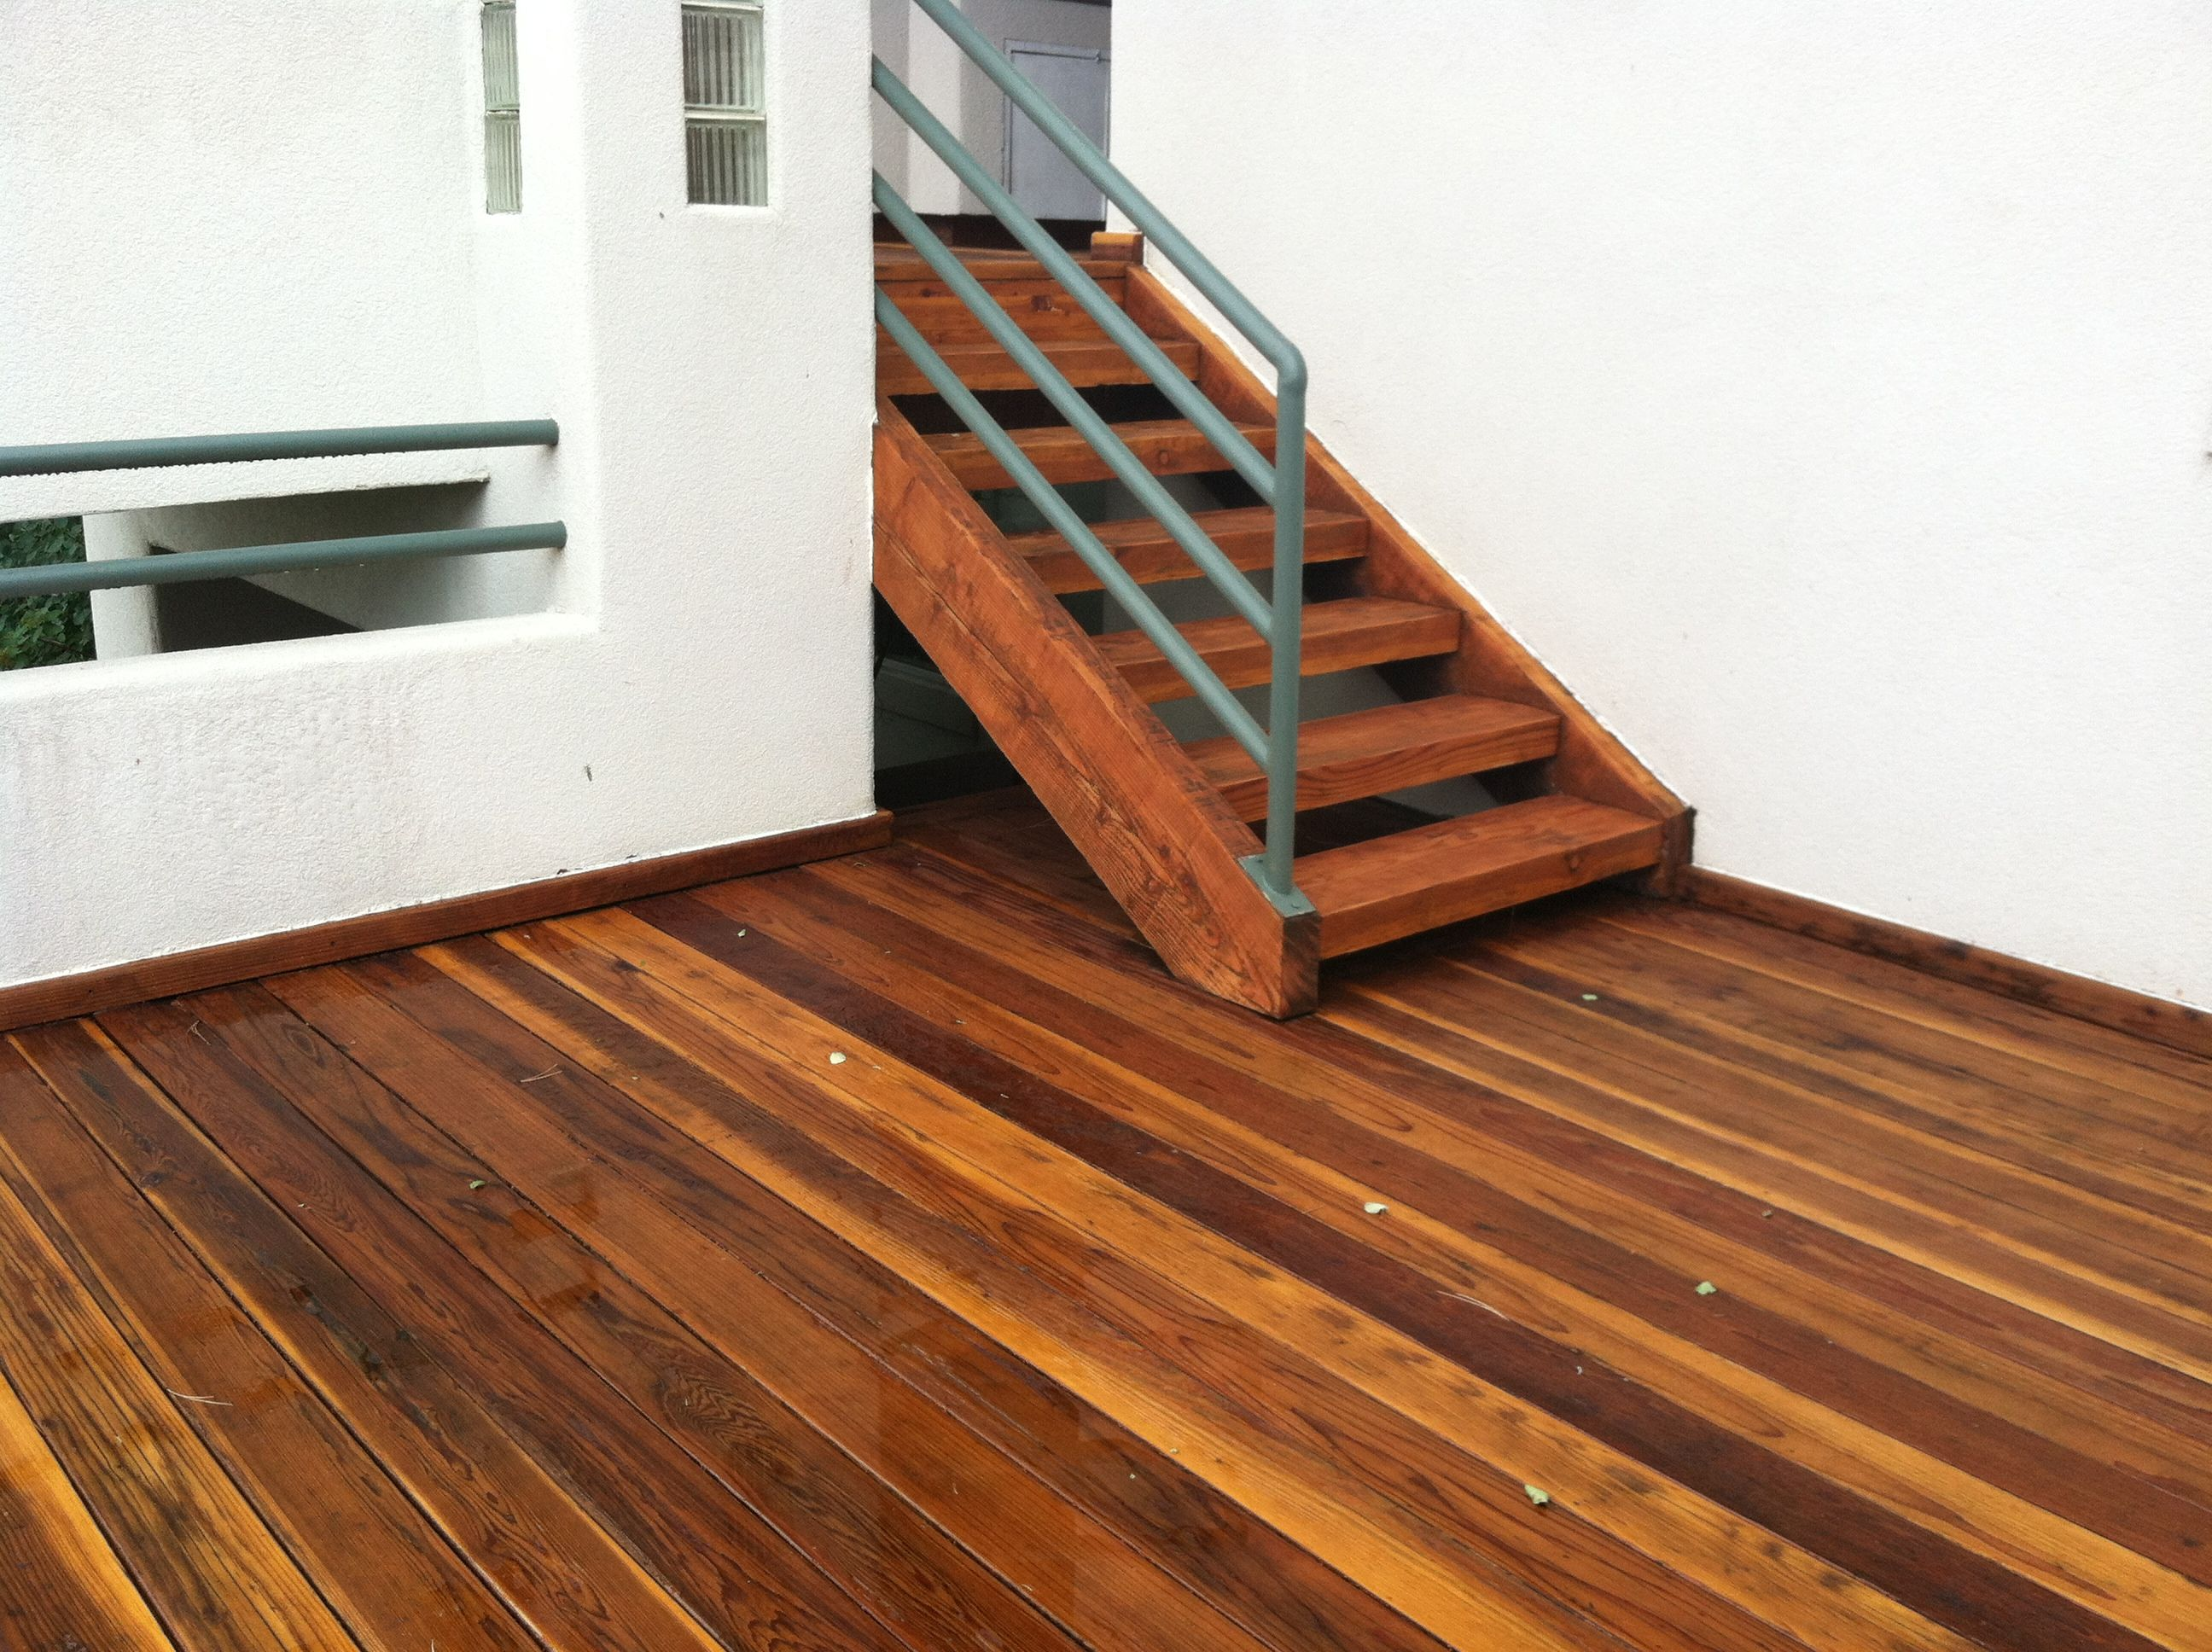 Cabot S Australian Timber Oil Deck Stain In Natural After A Rain Storm